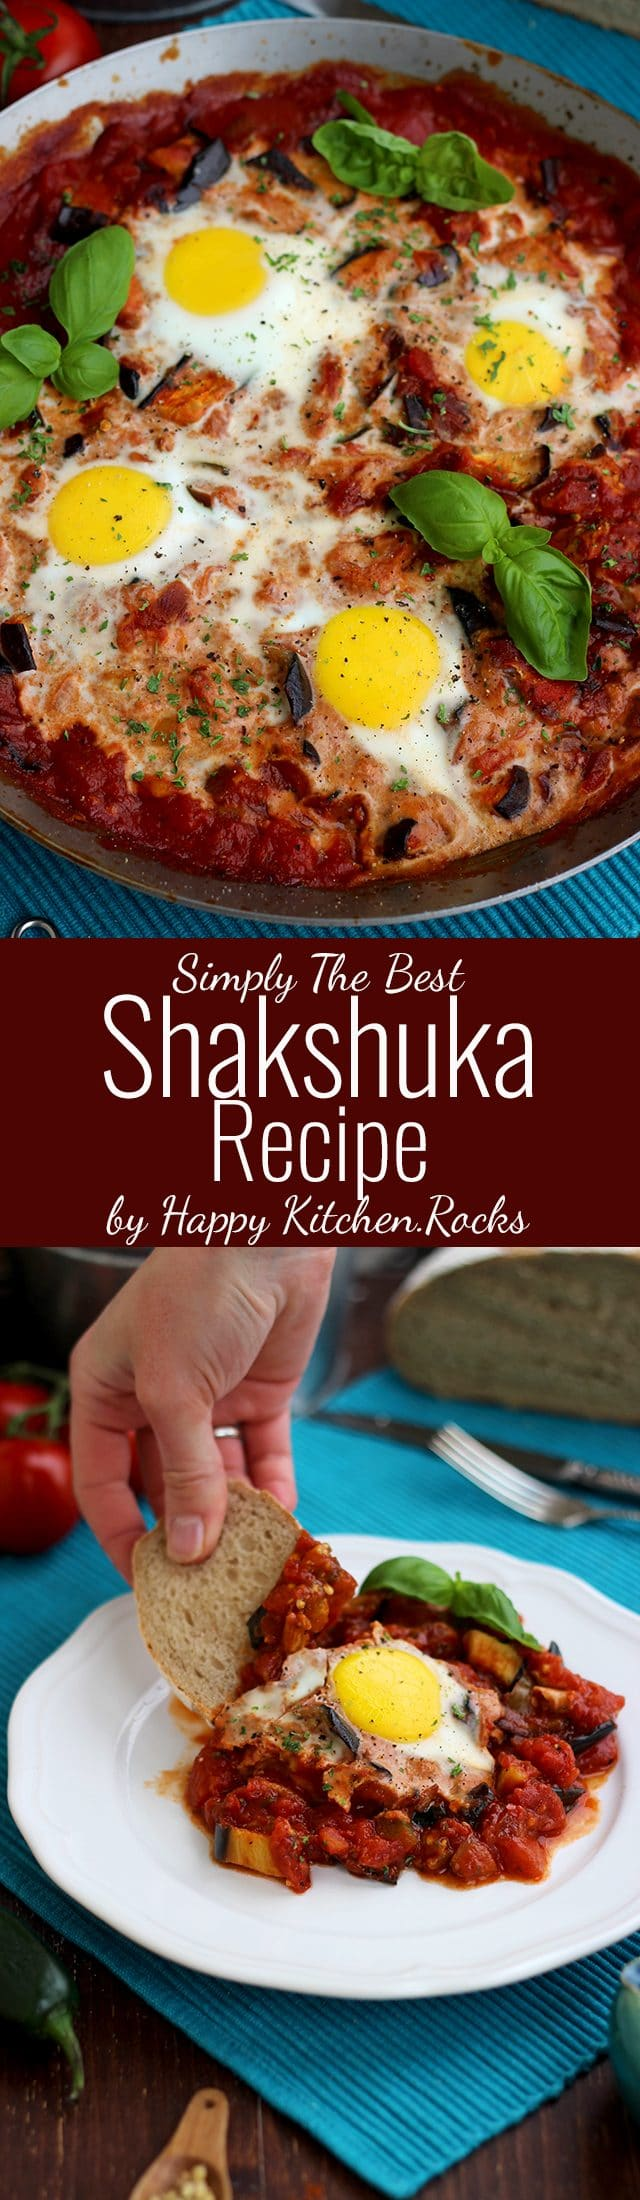 The Best Shakshuka Recipe Super Long Collage with Text Overlay